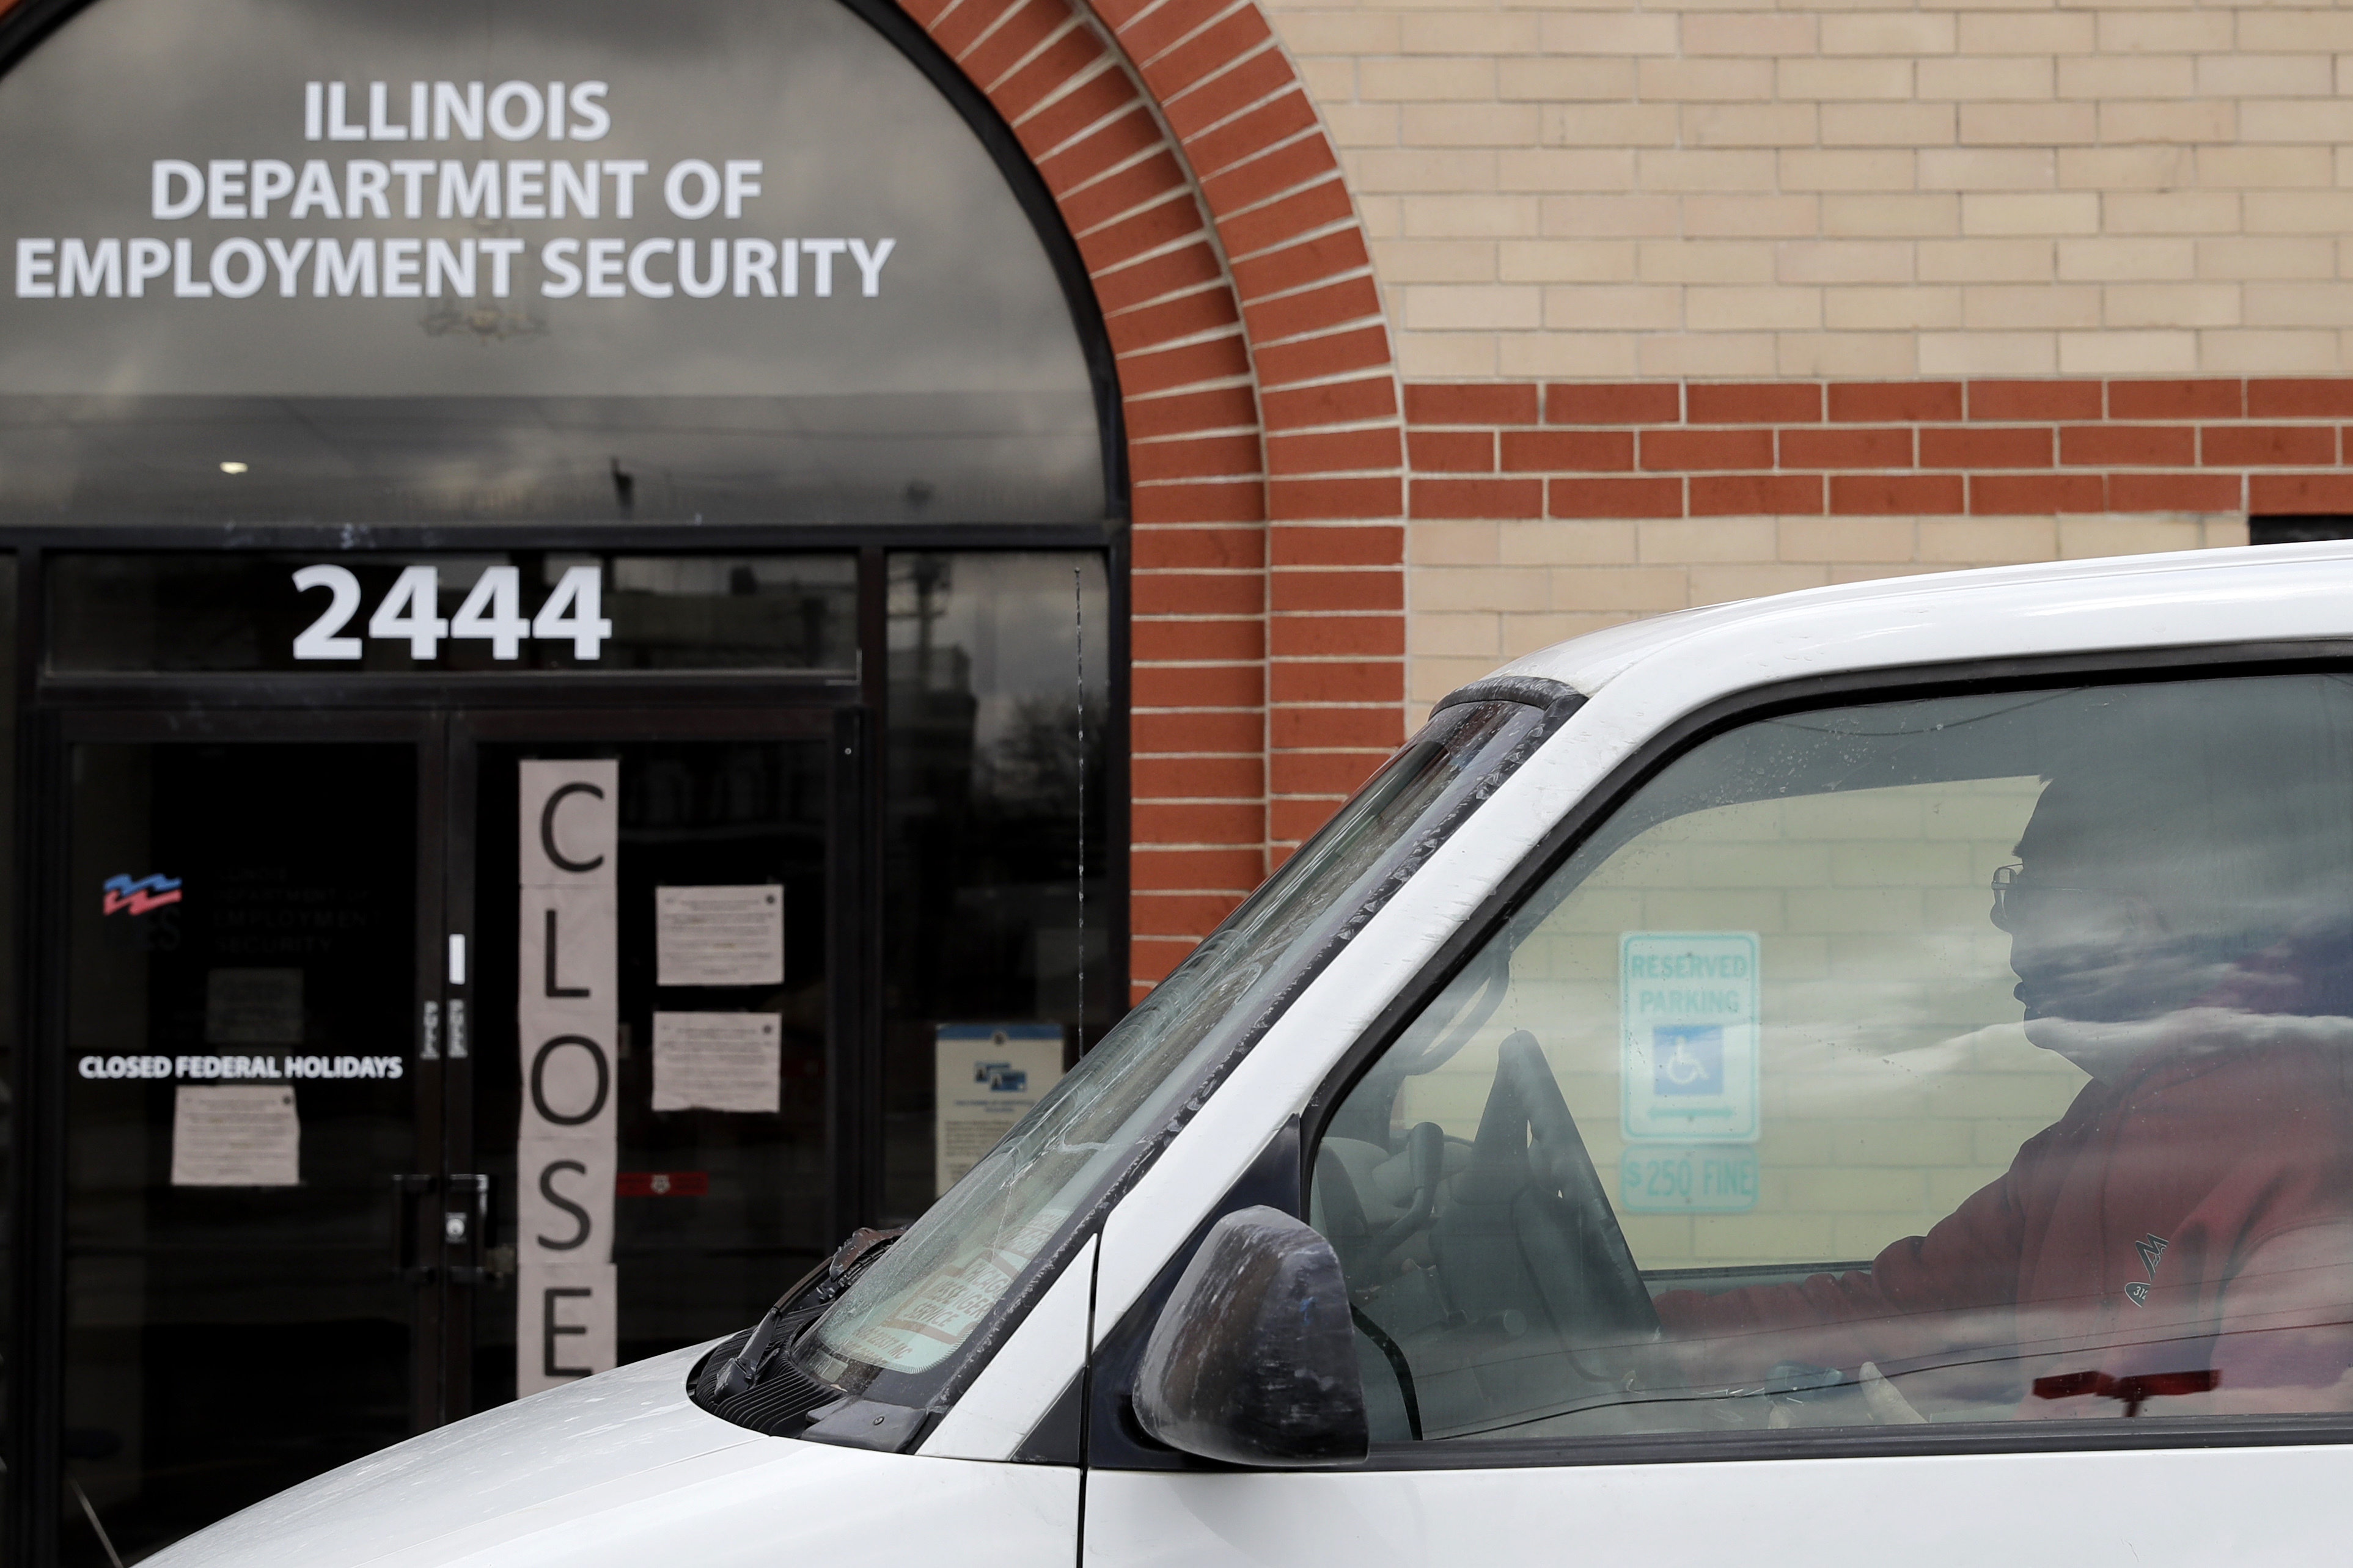 A man looks at the closed sign in front of Illinois Department of Employment Security in Chicago, Wednesday, April 15, 2020.